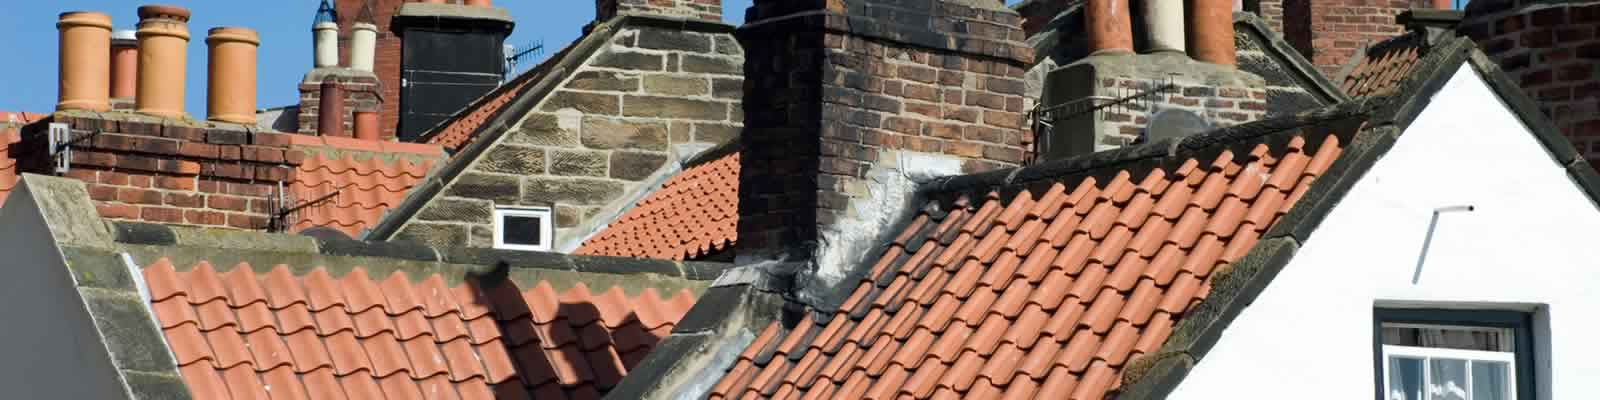 Roofing maintenance and repairs in Birmingham and Wolverhampton